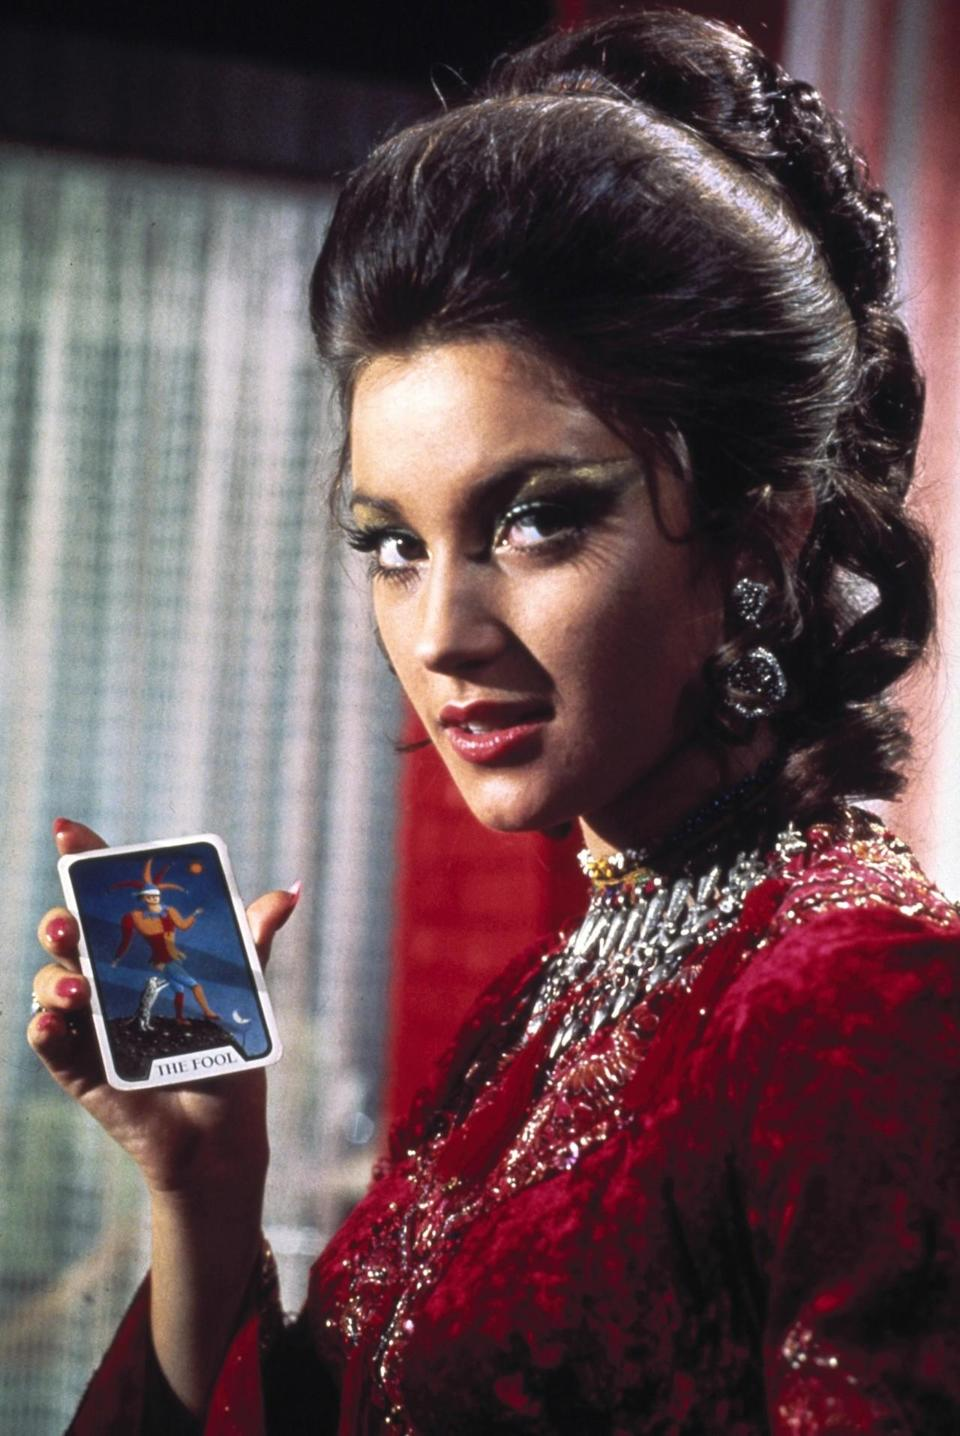 <p>As the youngest bond girl ever — she was only 22 years old — Seymour played an enchanting psychic and Tarot card reader, aptly named Solitaire, whose abilities are mysteriously lost when she loses her virginity to James Bond. Yeah, just go with it. <i>(Photo: Everett Collection)</i></p>